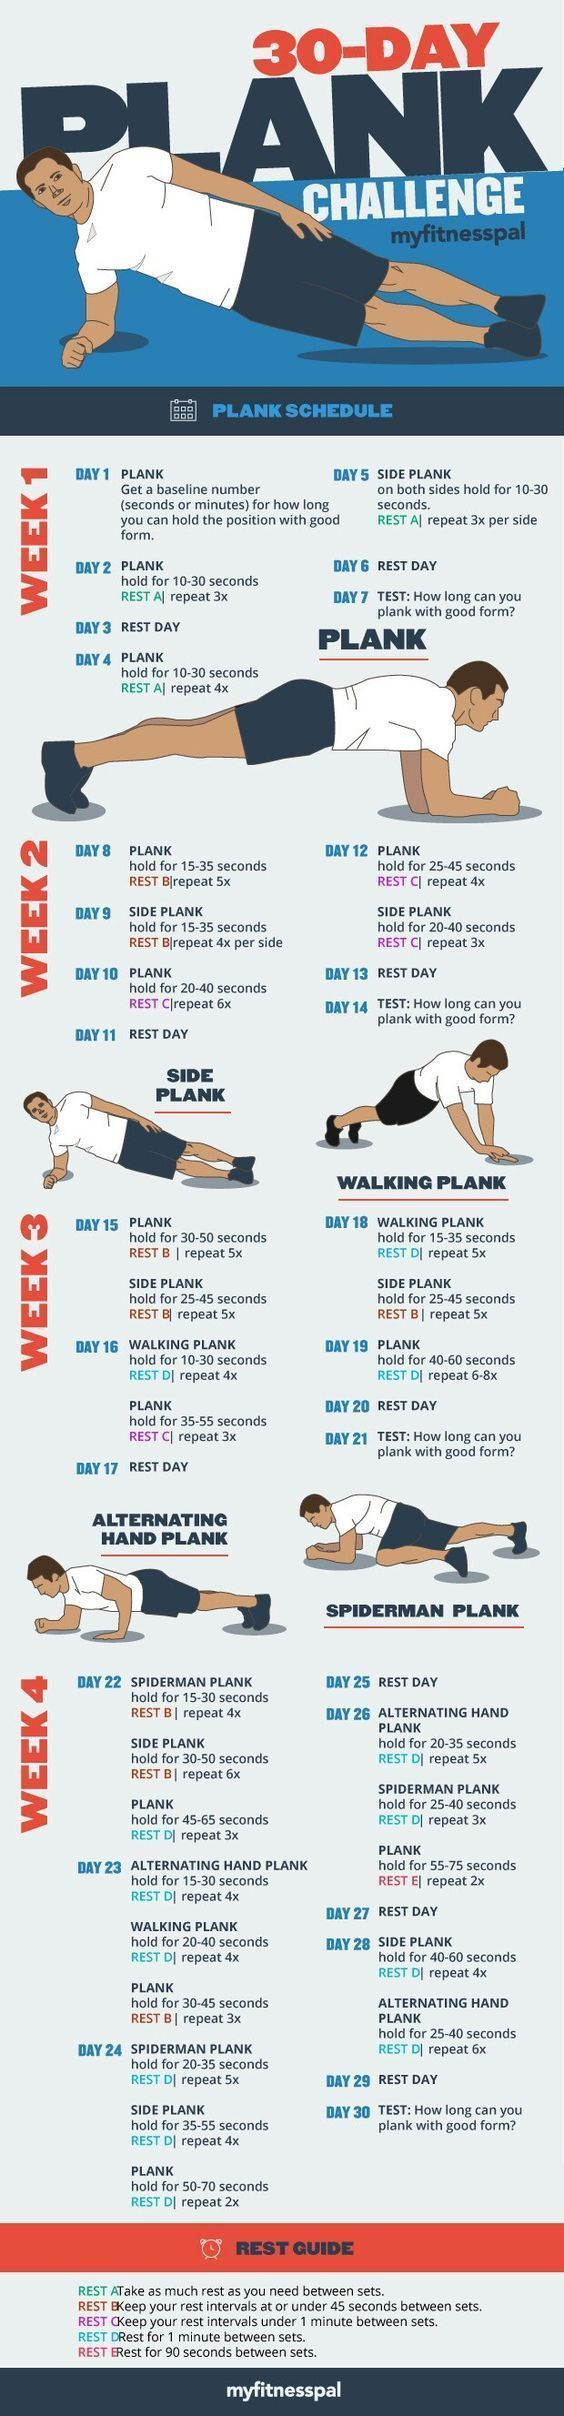 Men's Fitness - Men's Abs Workout (10 Charts)#abs #charts #fitness #mens #workout